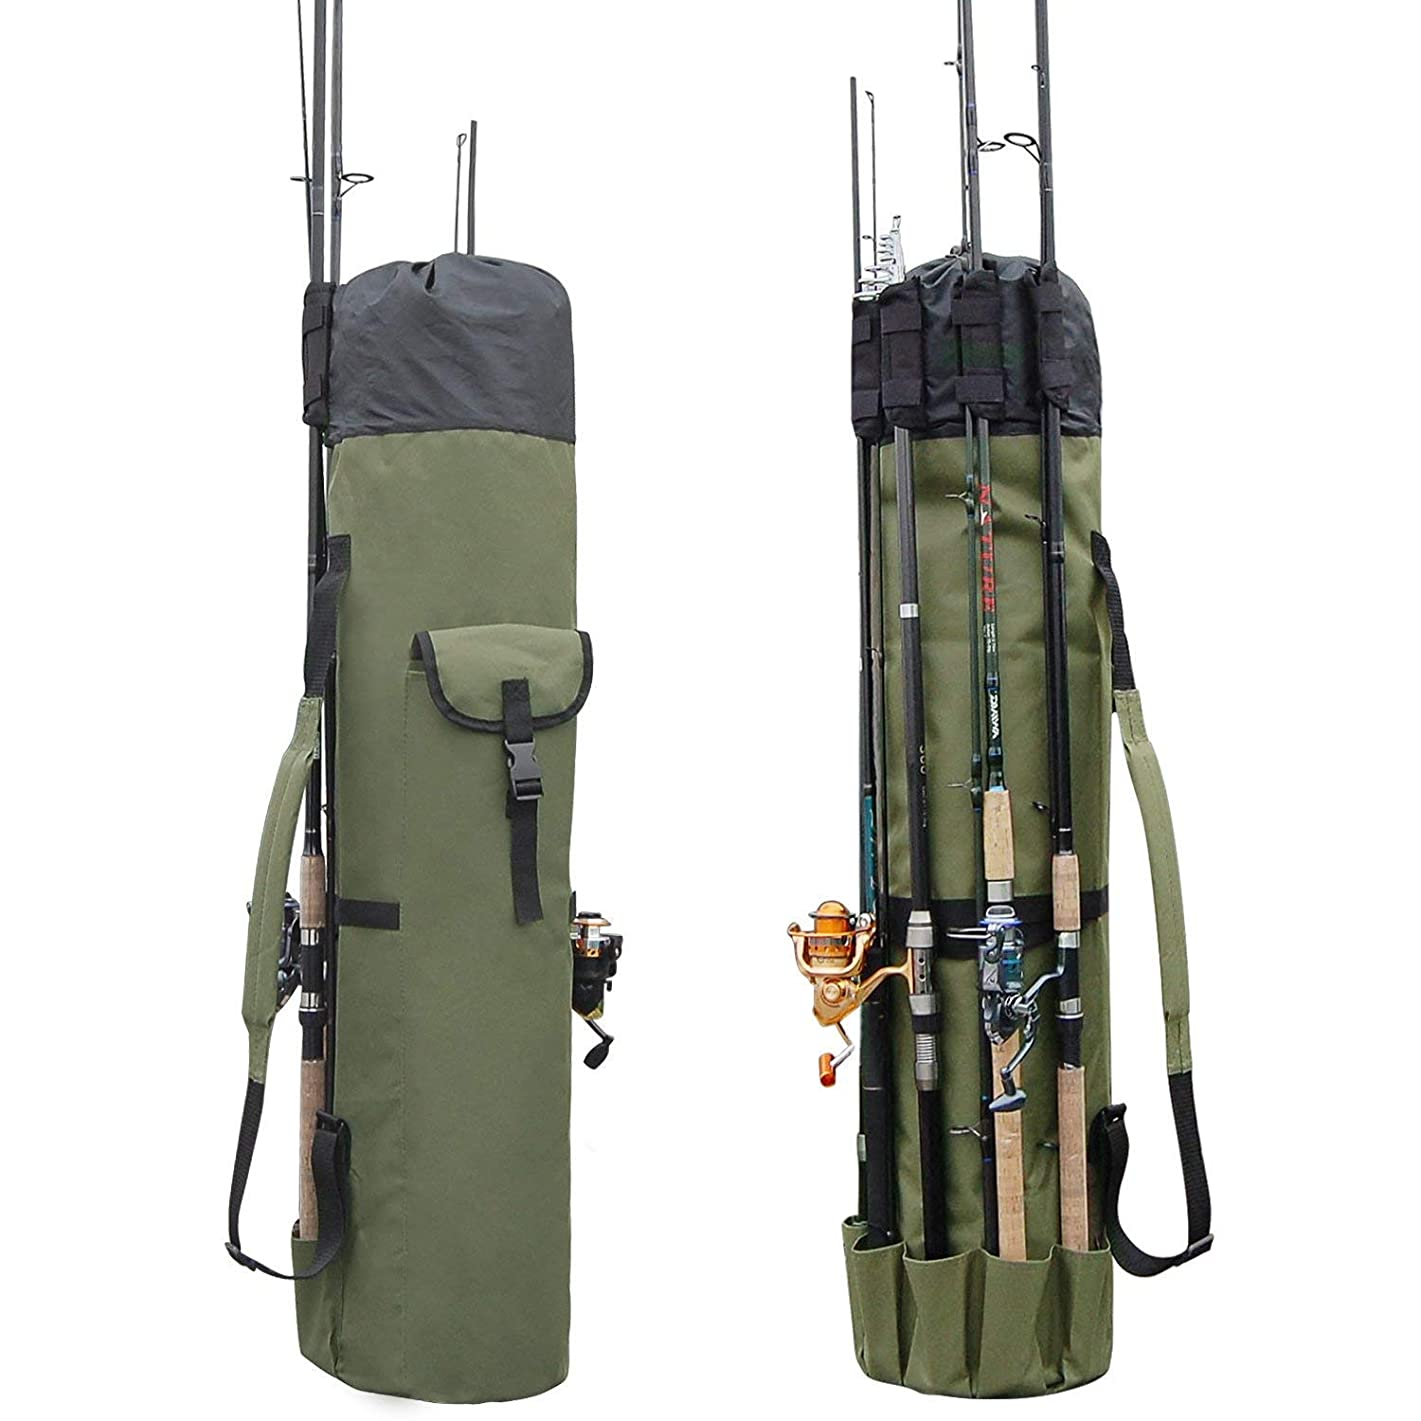 Lixada Premium Fishing Rod Bag   Portable Canvas Fishing Rod&Reel Organizer Bags, Fishing Pole Tools Travel Carry Case - Holds 5 Poles, Tackles&More, Fly Fishing Rod Storage Tubes with Shoulder Strap